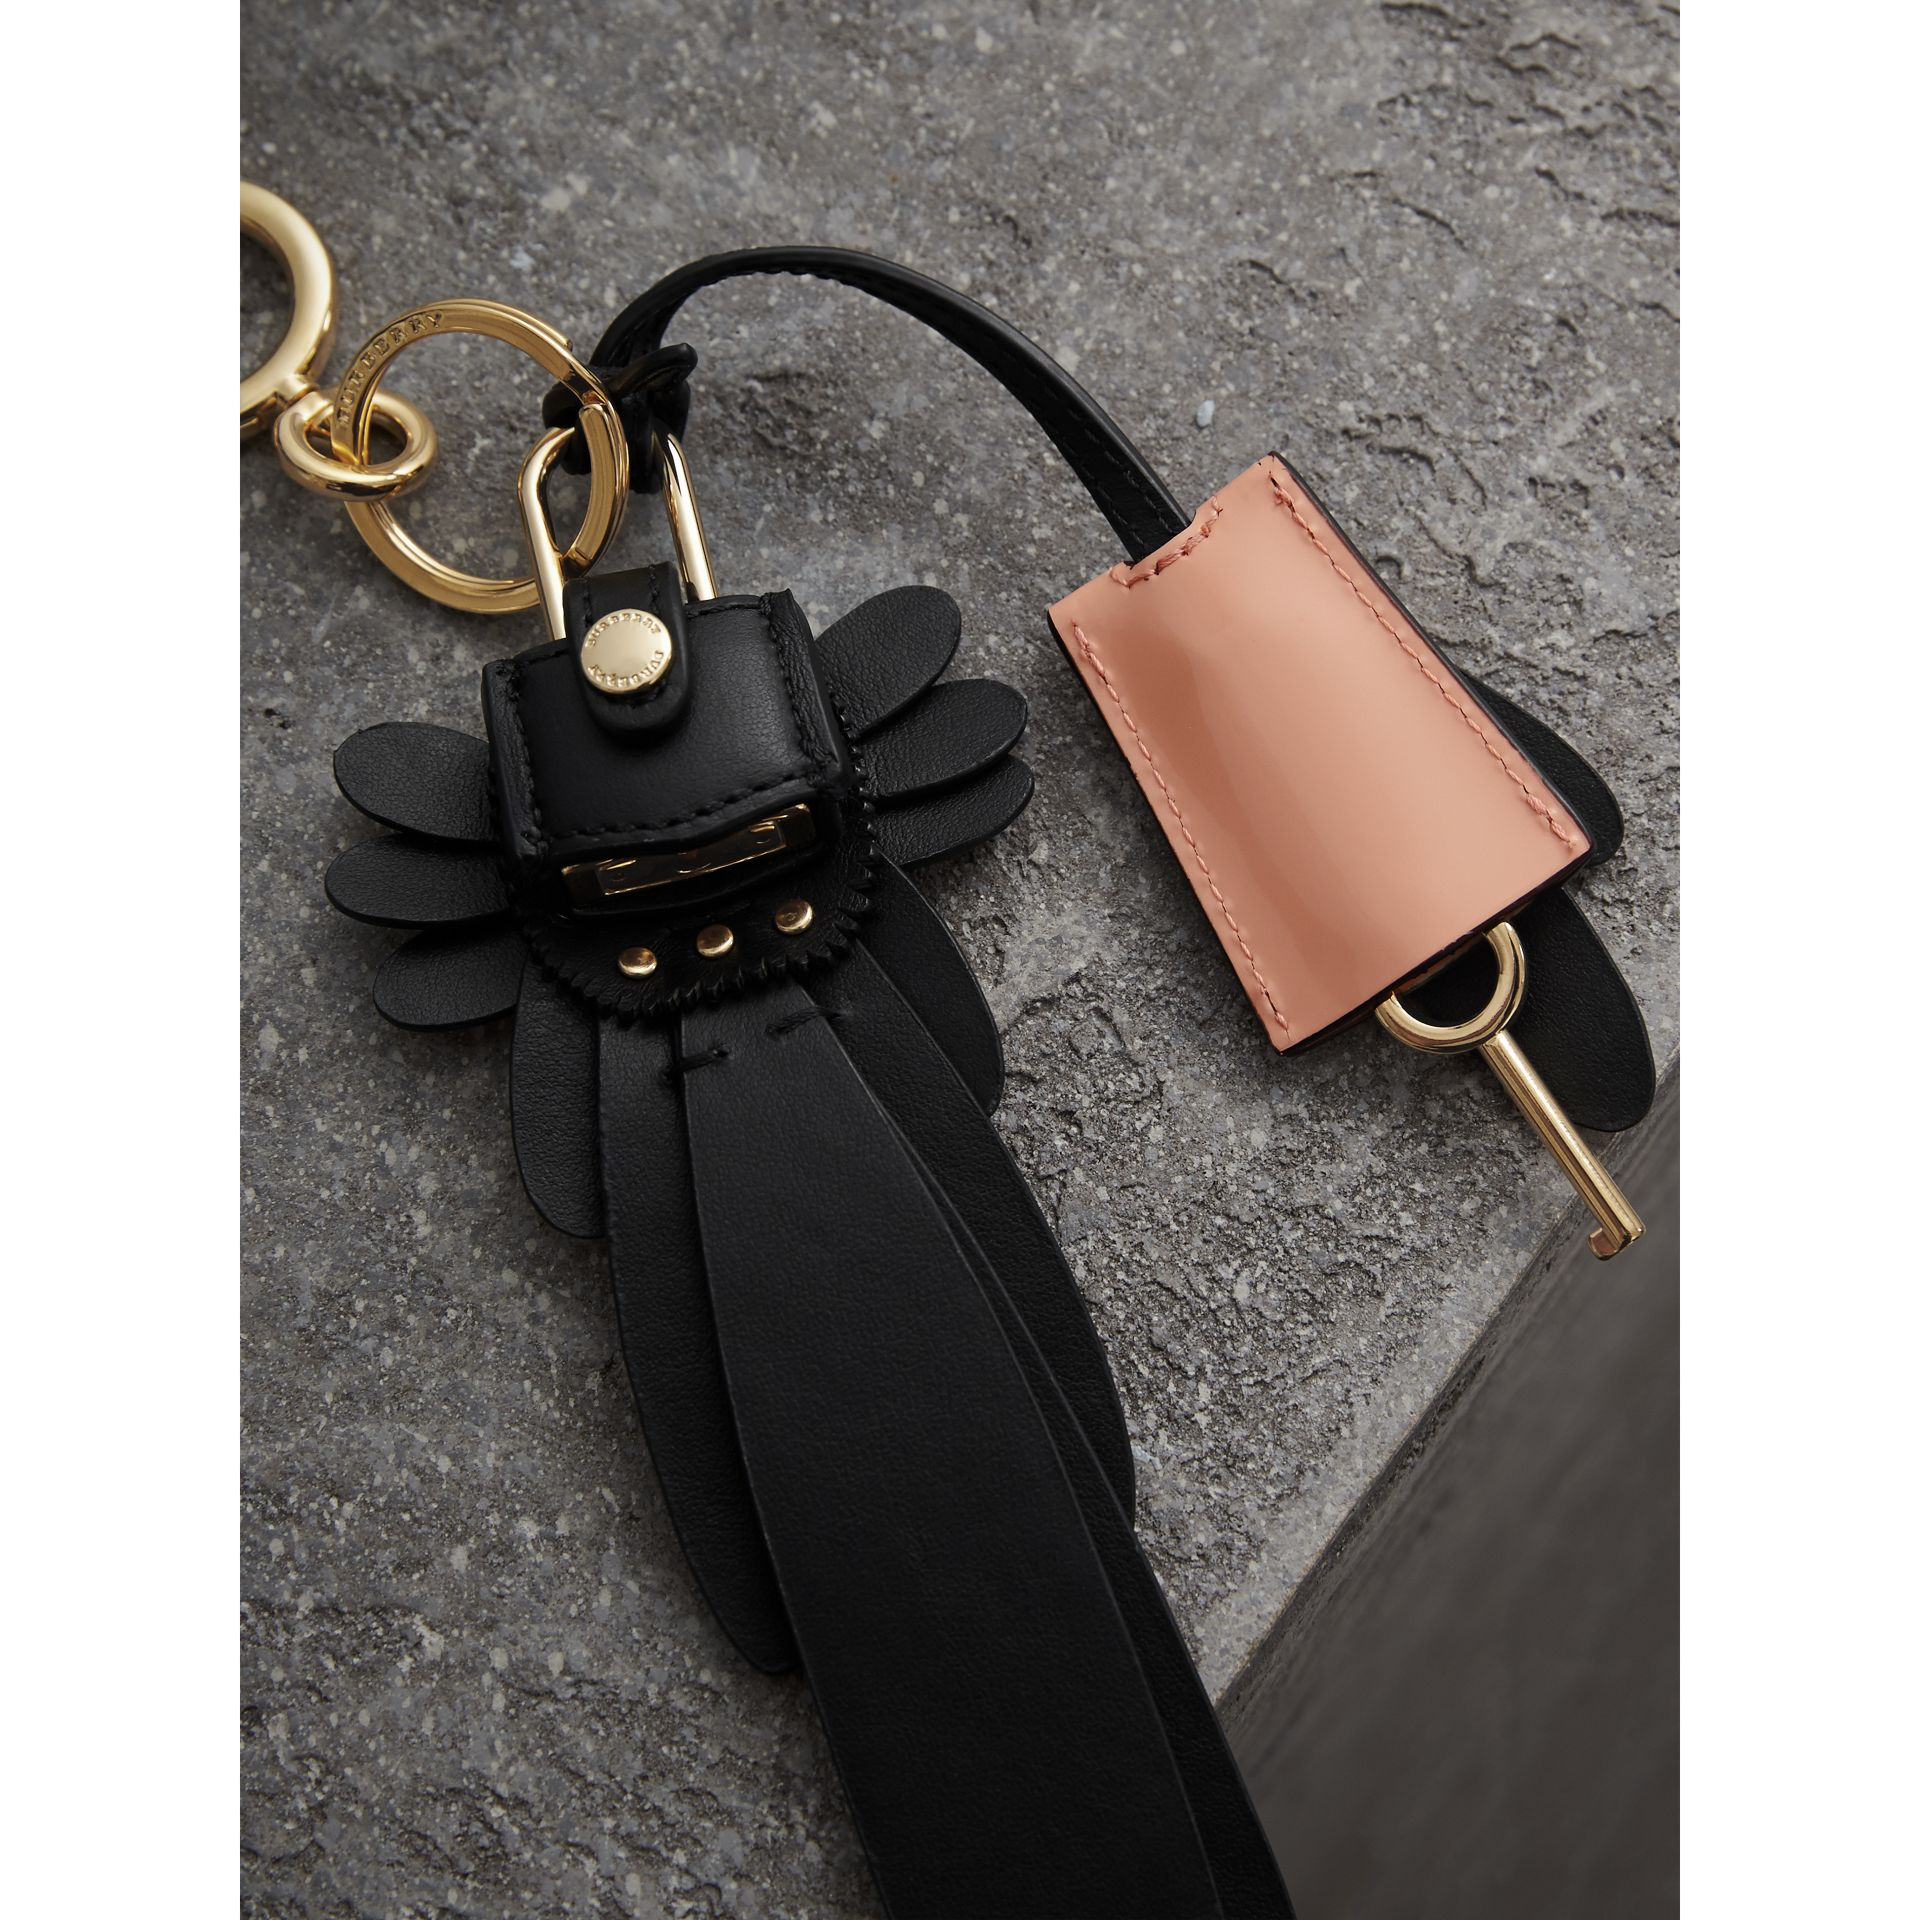 Beasts Leather Key Charm and Padlock in Black - Women | Burberry - gallery image 3